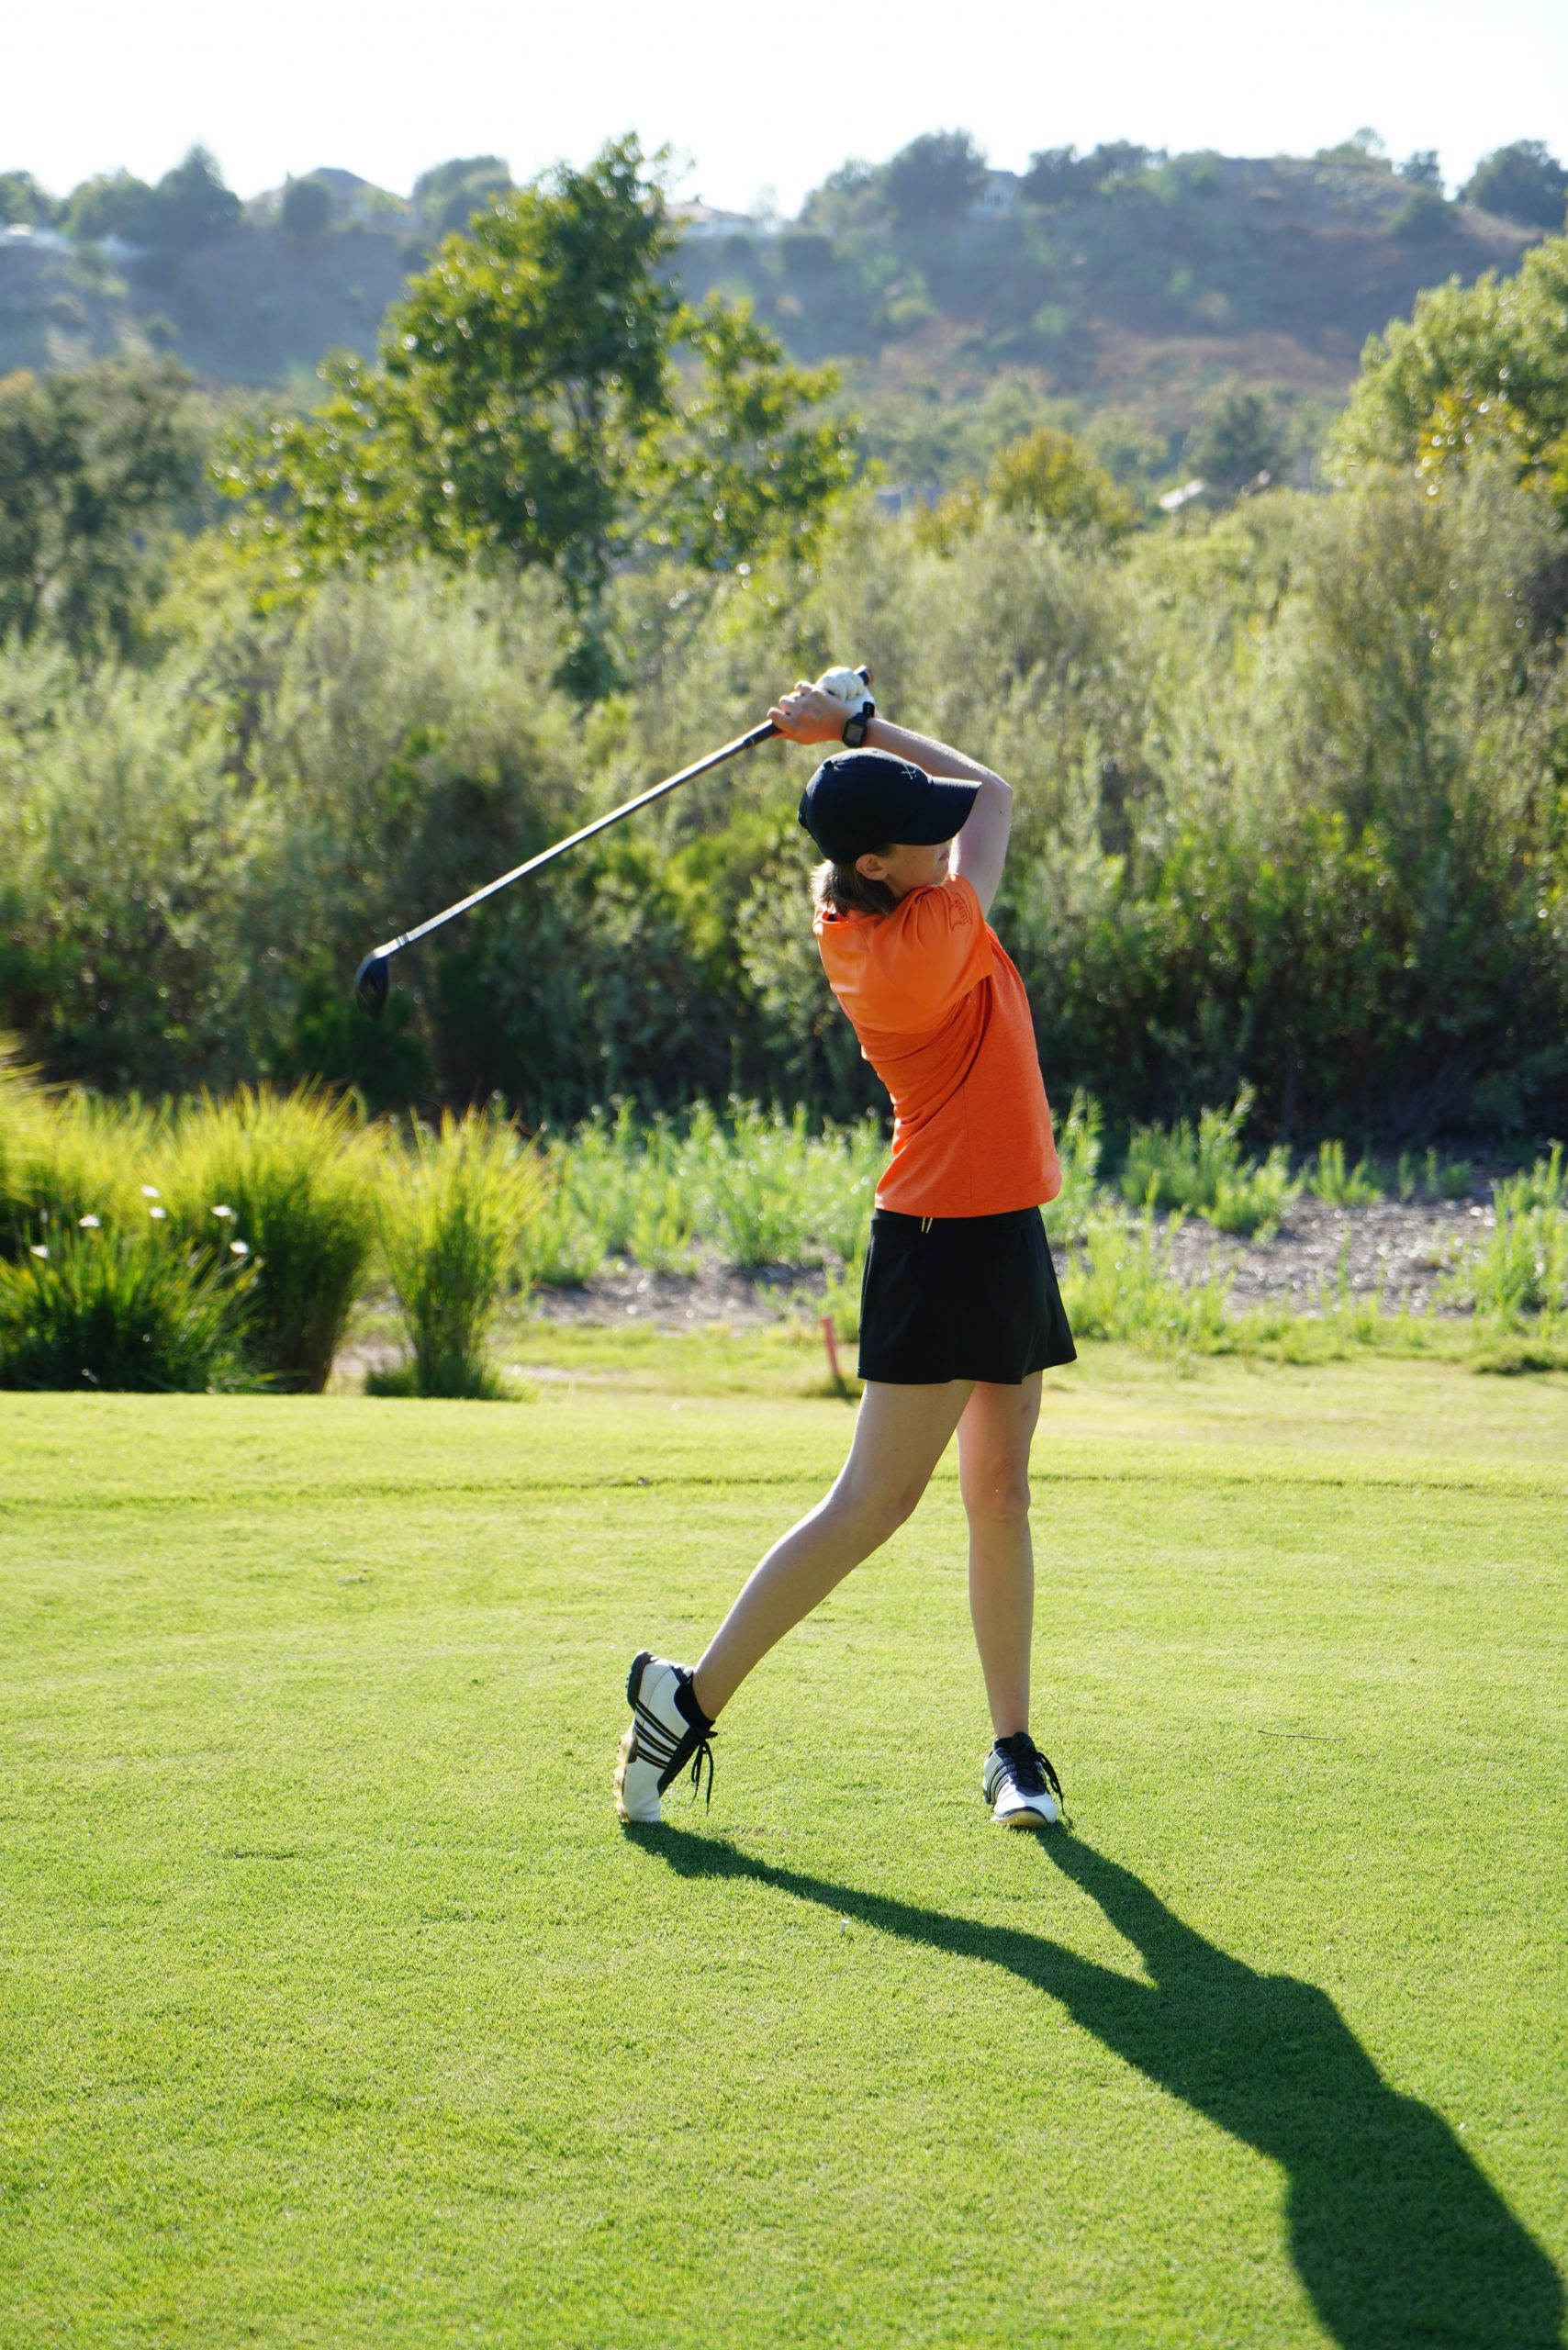 woman playing golf using single plane golf swing